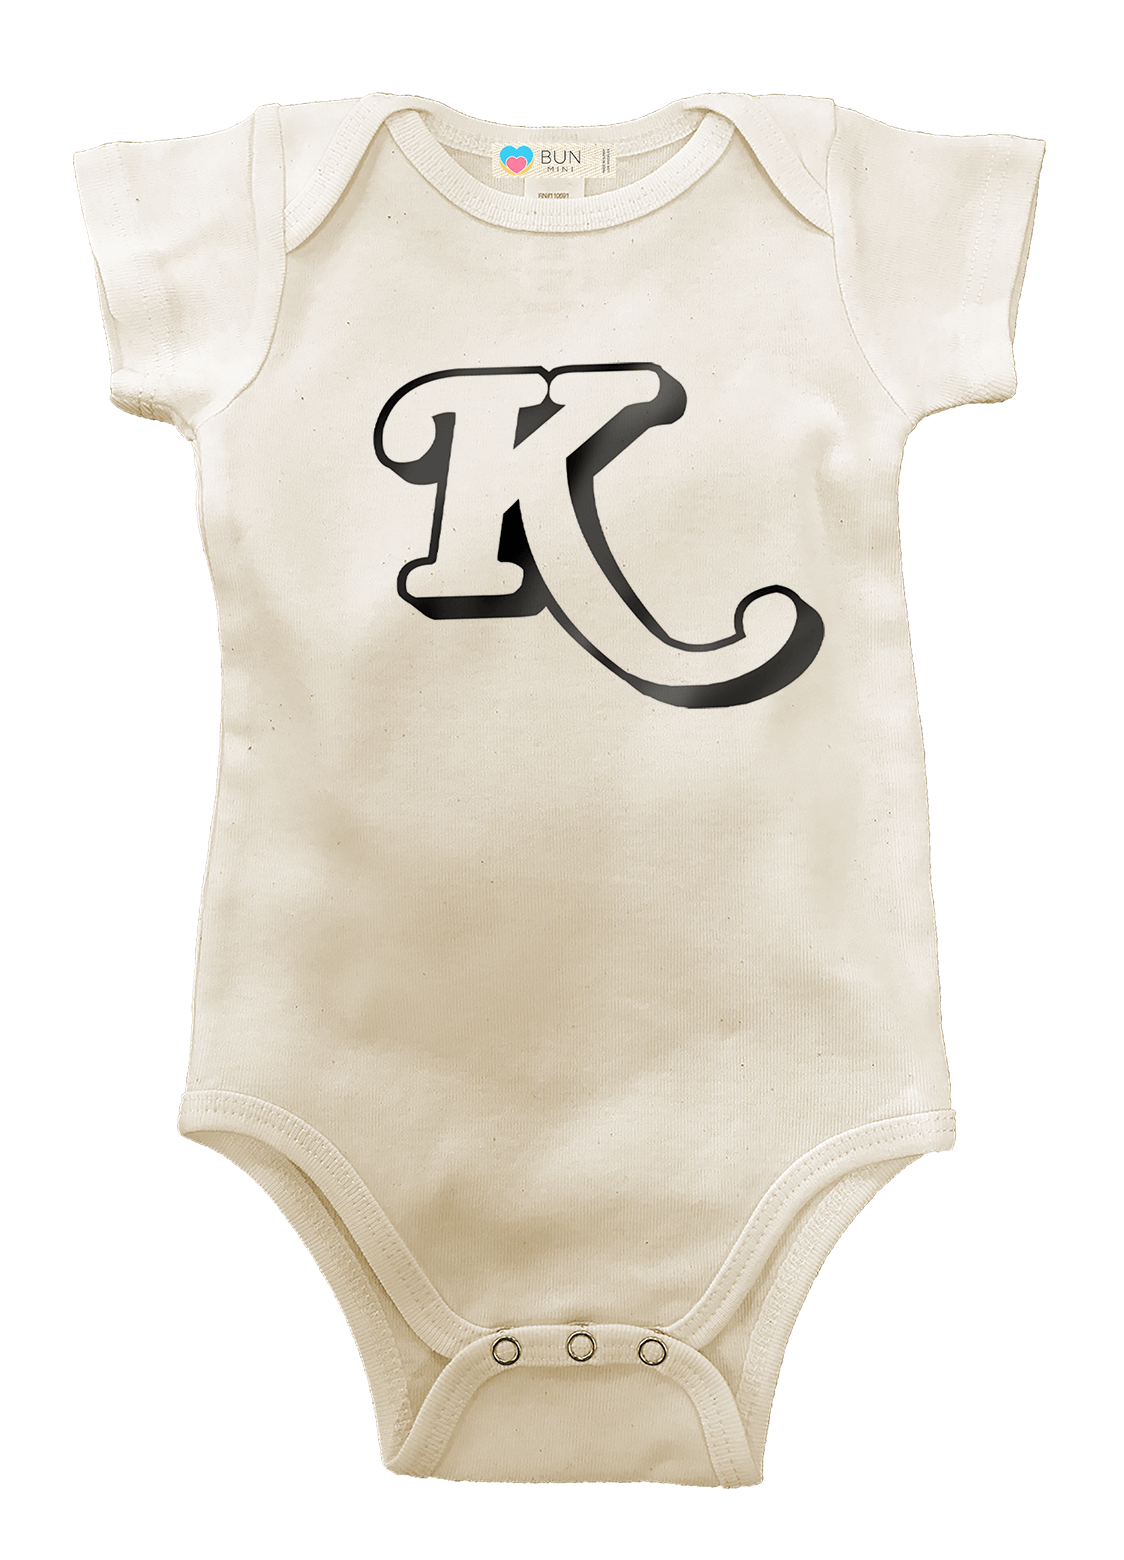 CUSTOMIZABLE Monogram Organic Baby Onesie, Baby, Bun Maternity Nursing Apparel- Bun Maternity